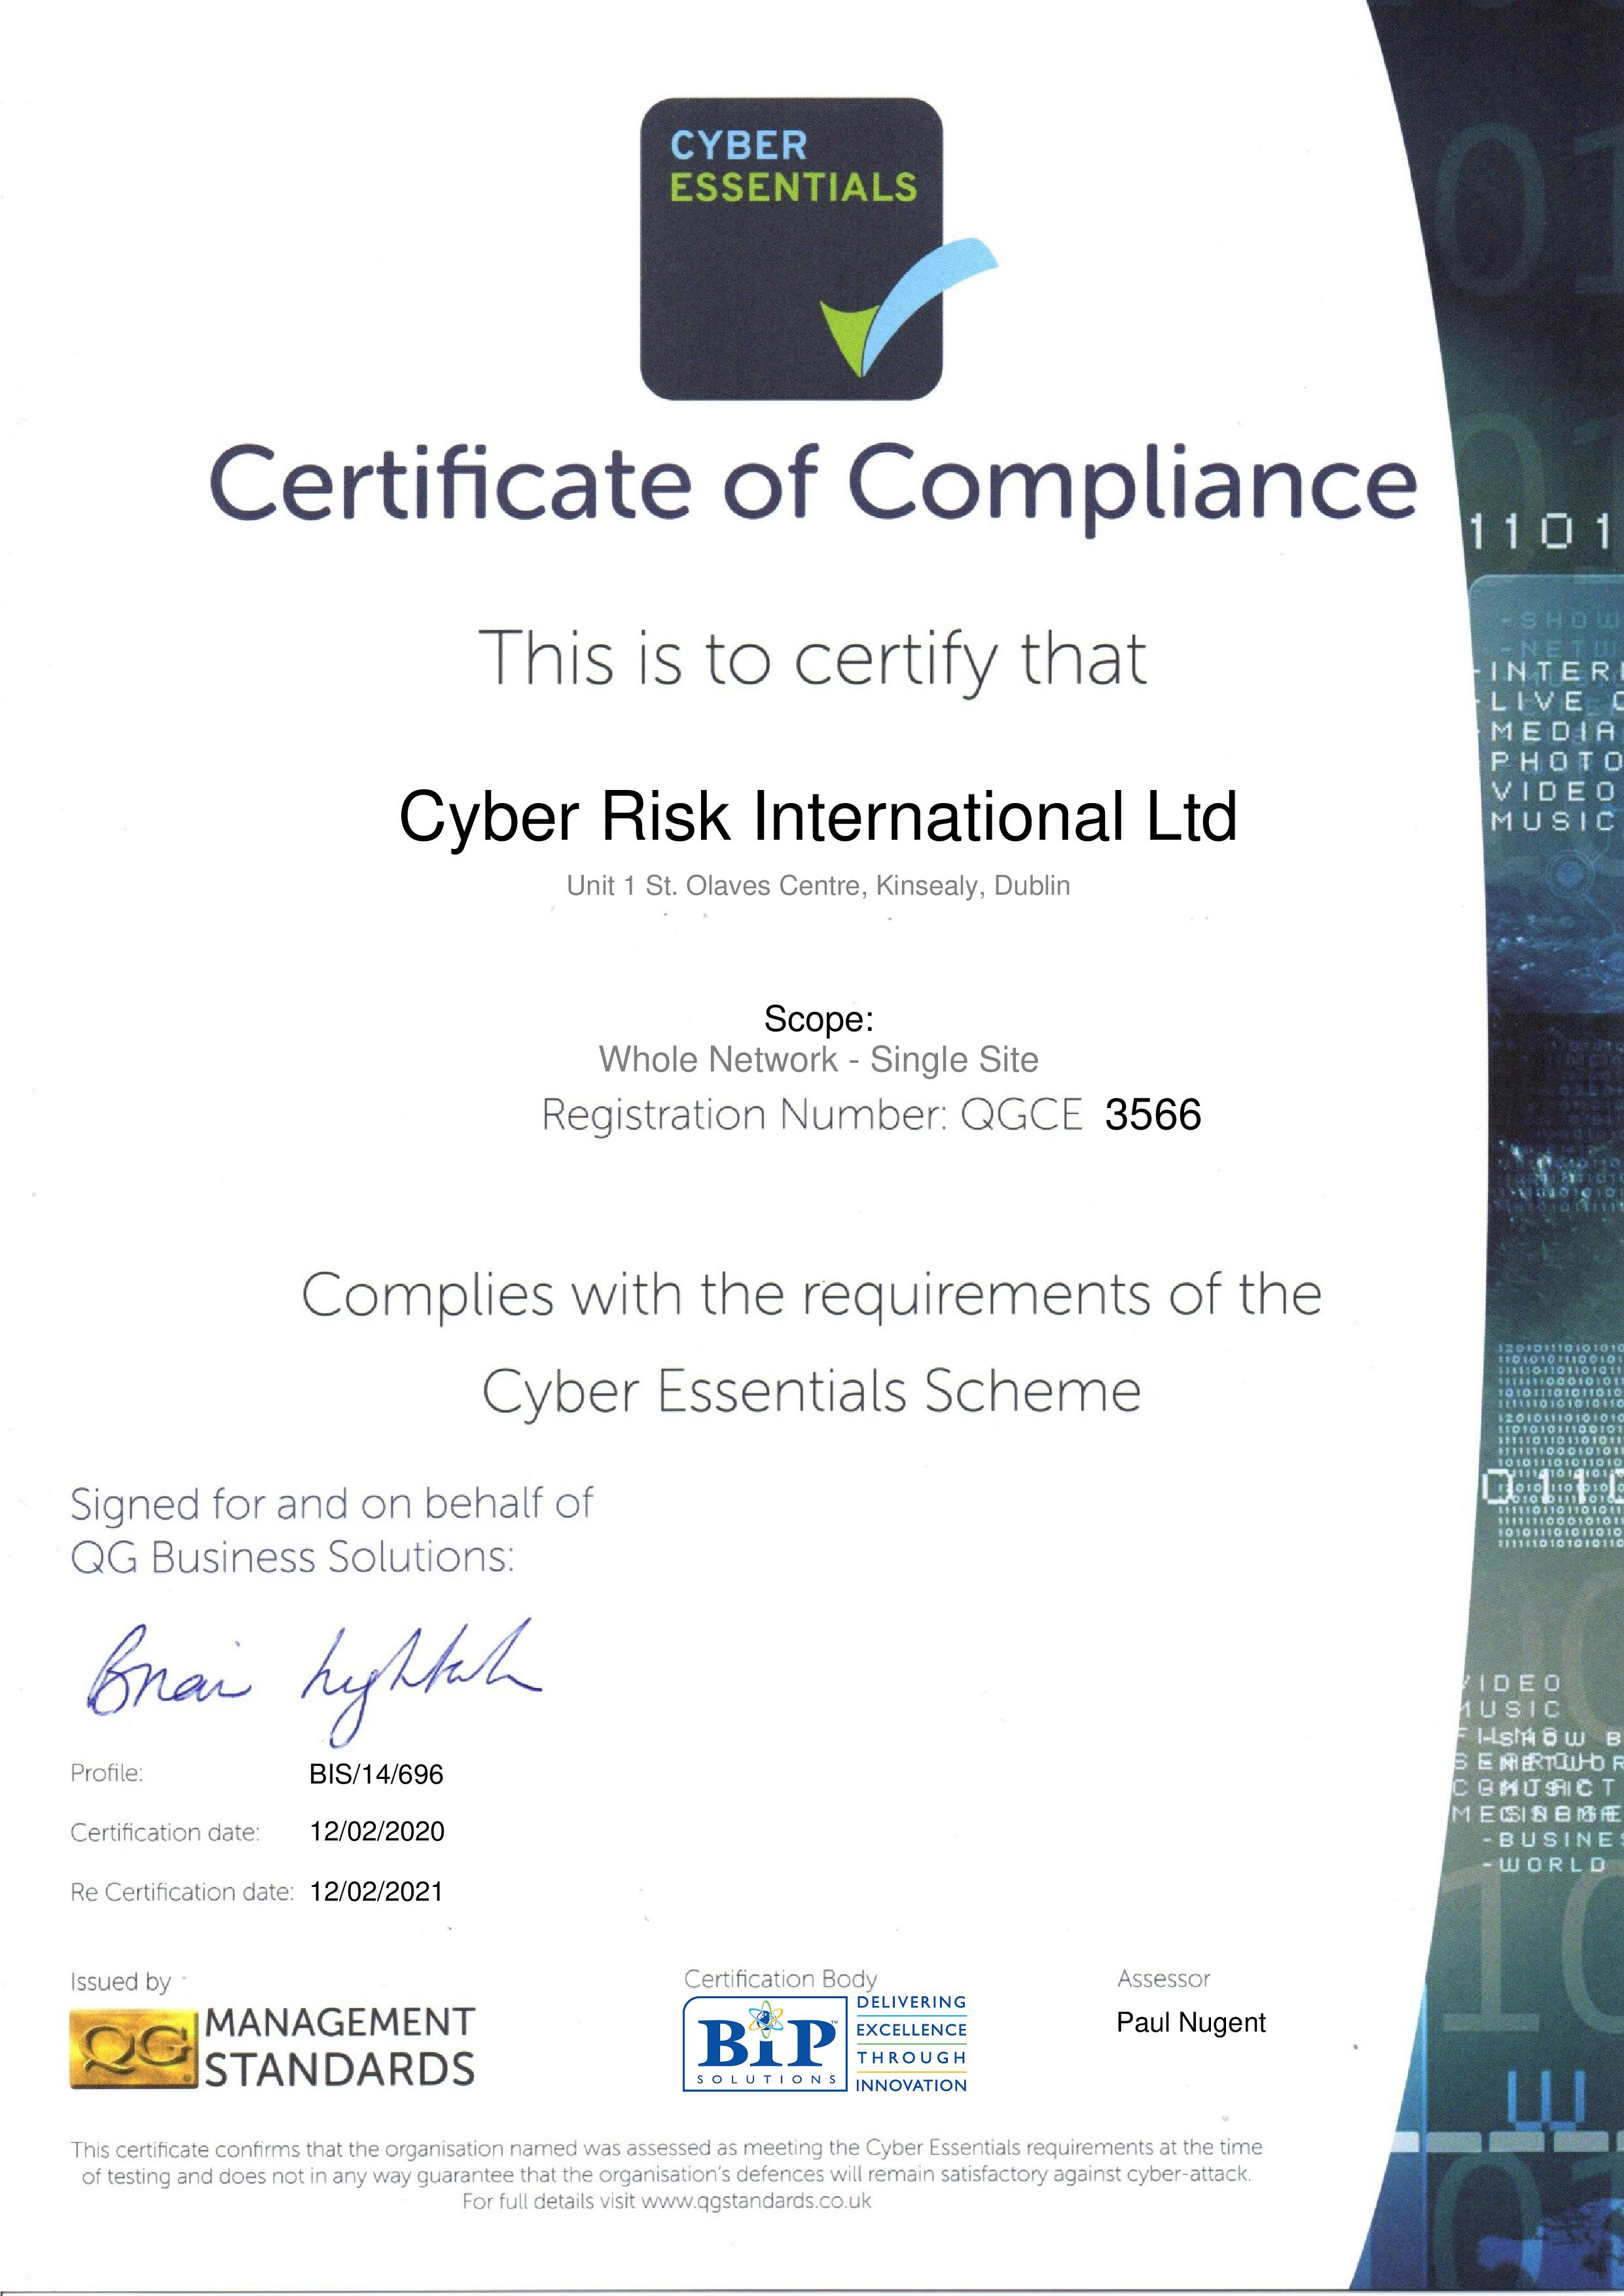 QGCE3566 Cyber Risk International Ltd